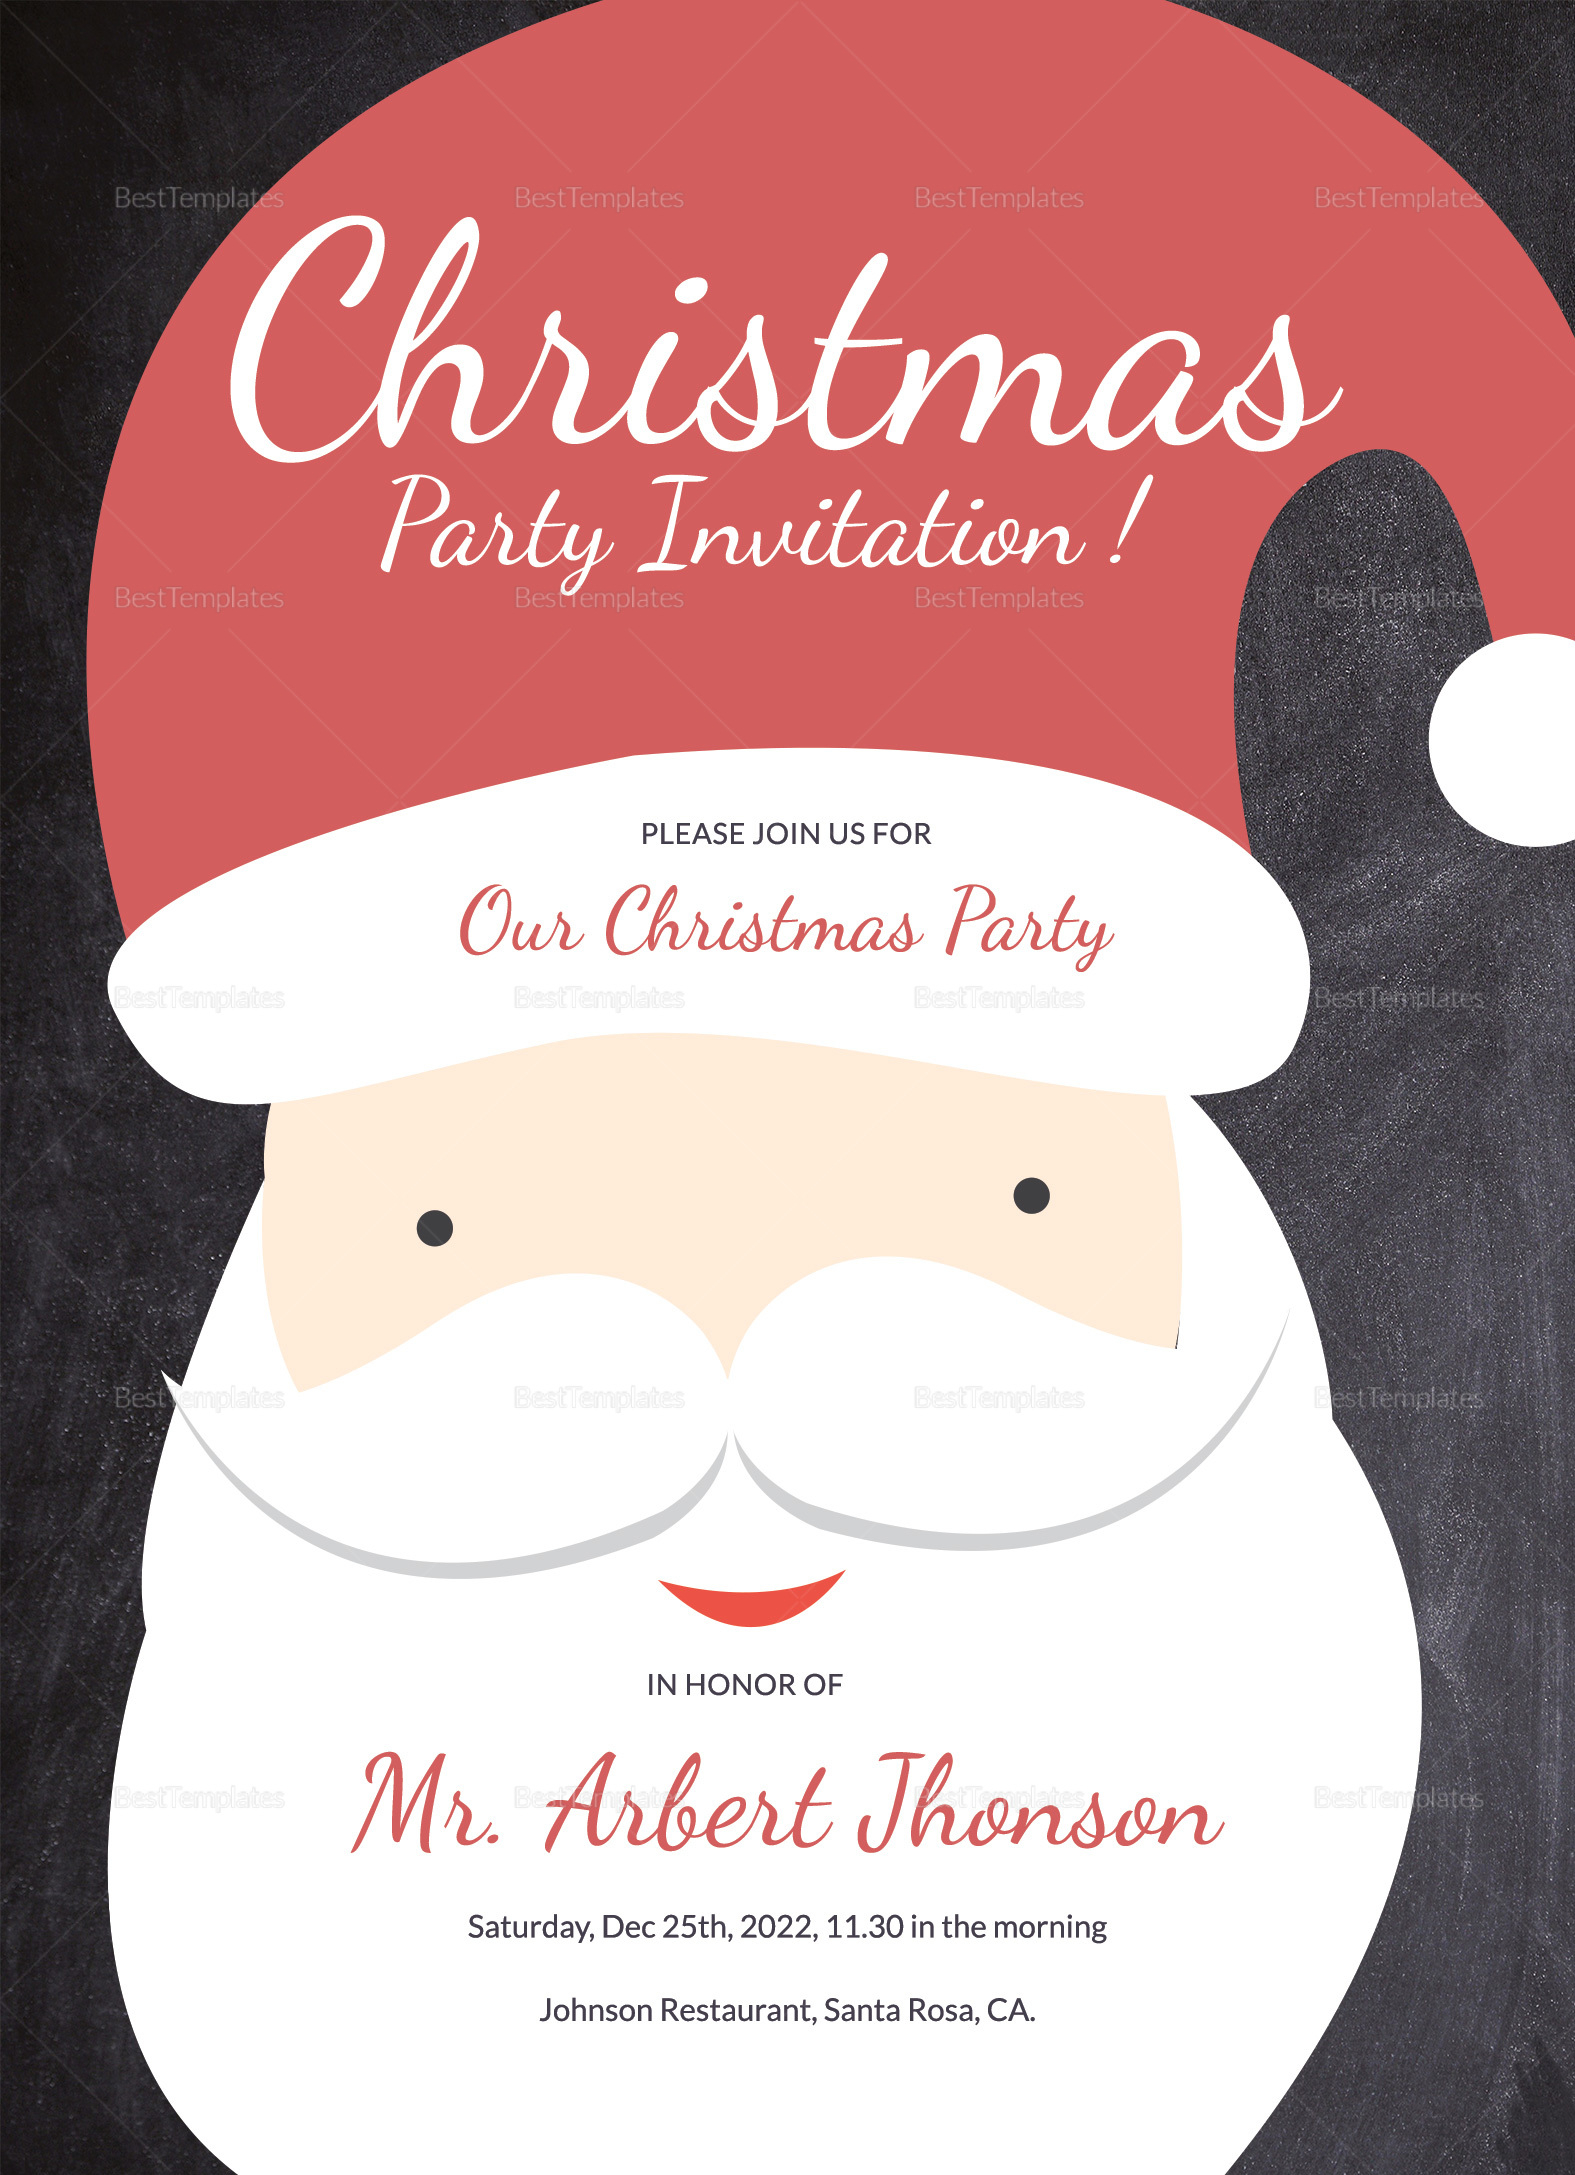 merry christmas party invitation template in adobe photoshop